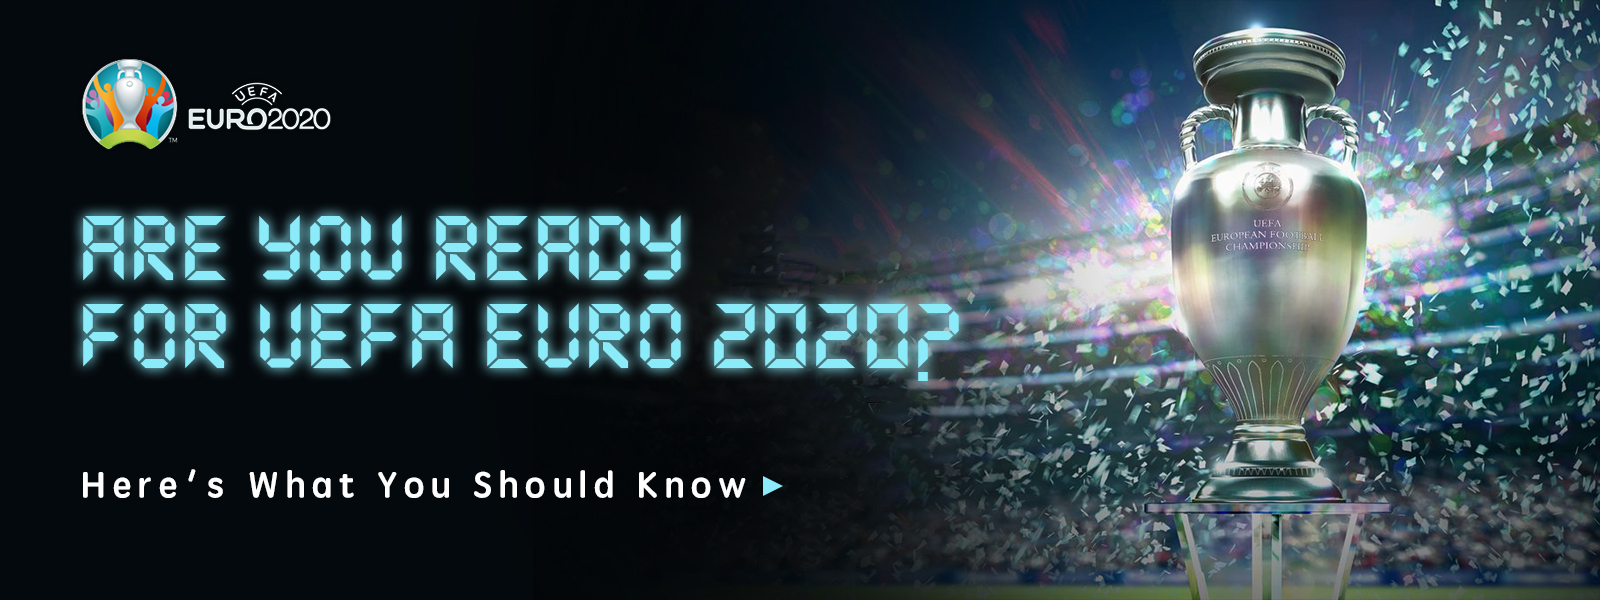 Are You Ready For UEFA Euro 2020? Here's What You Should Know